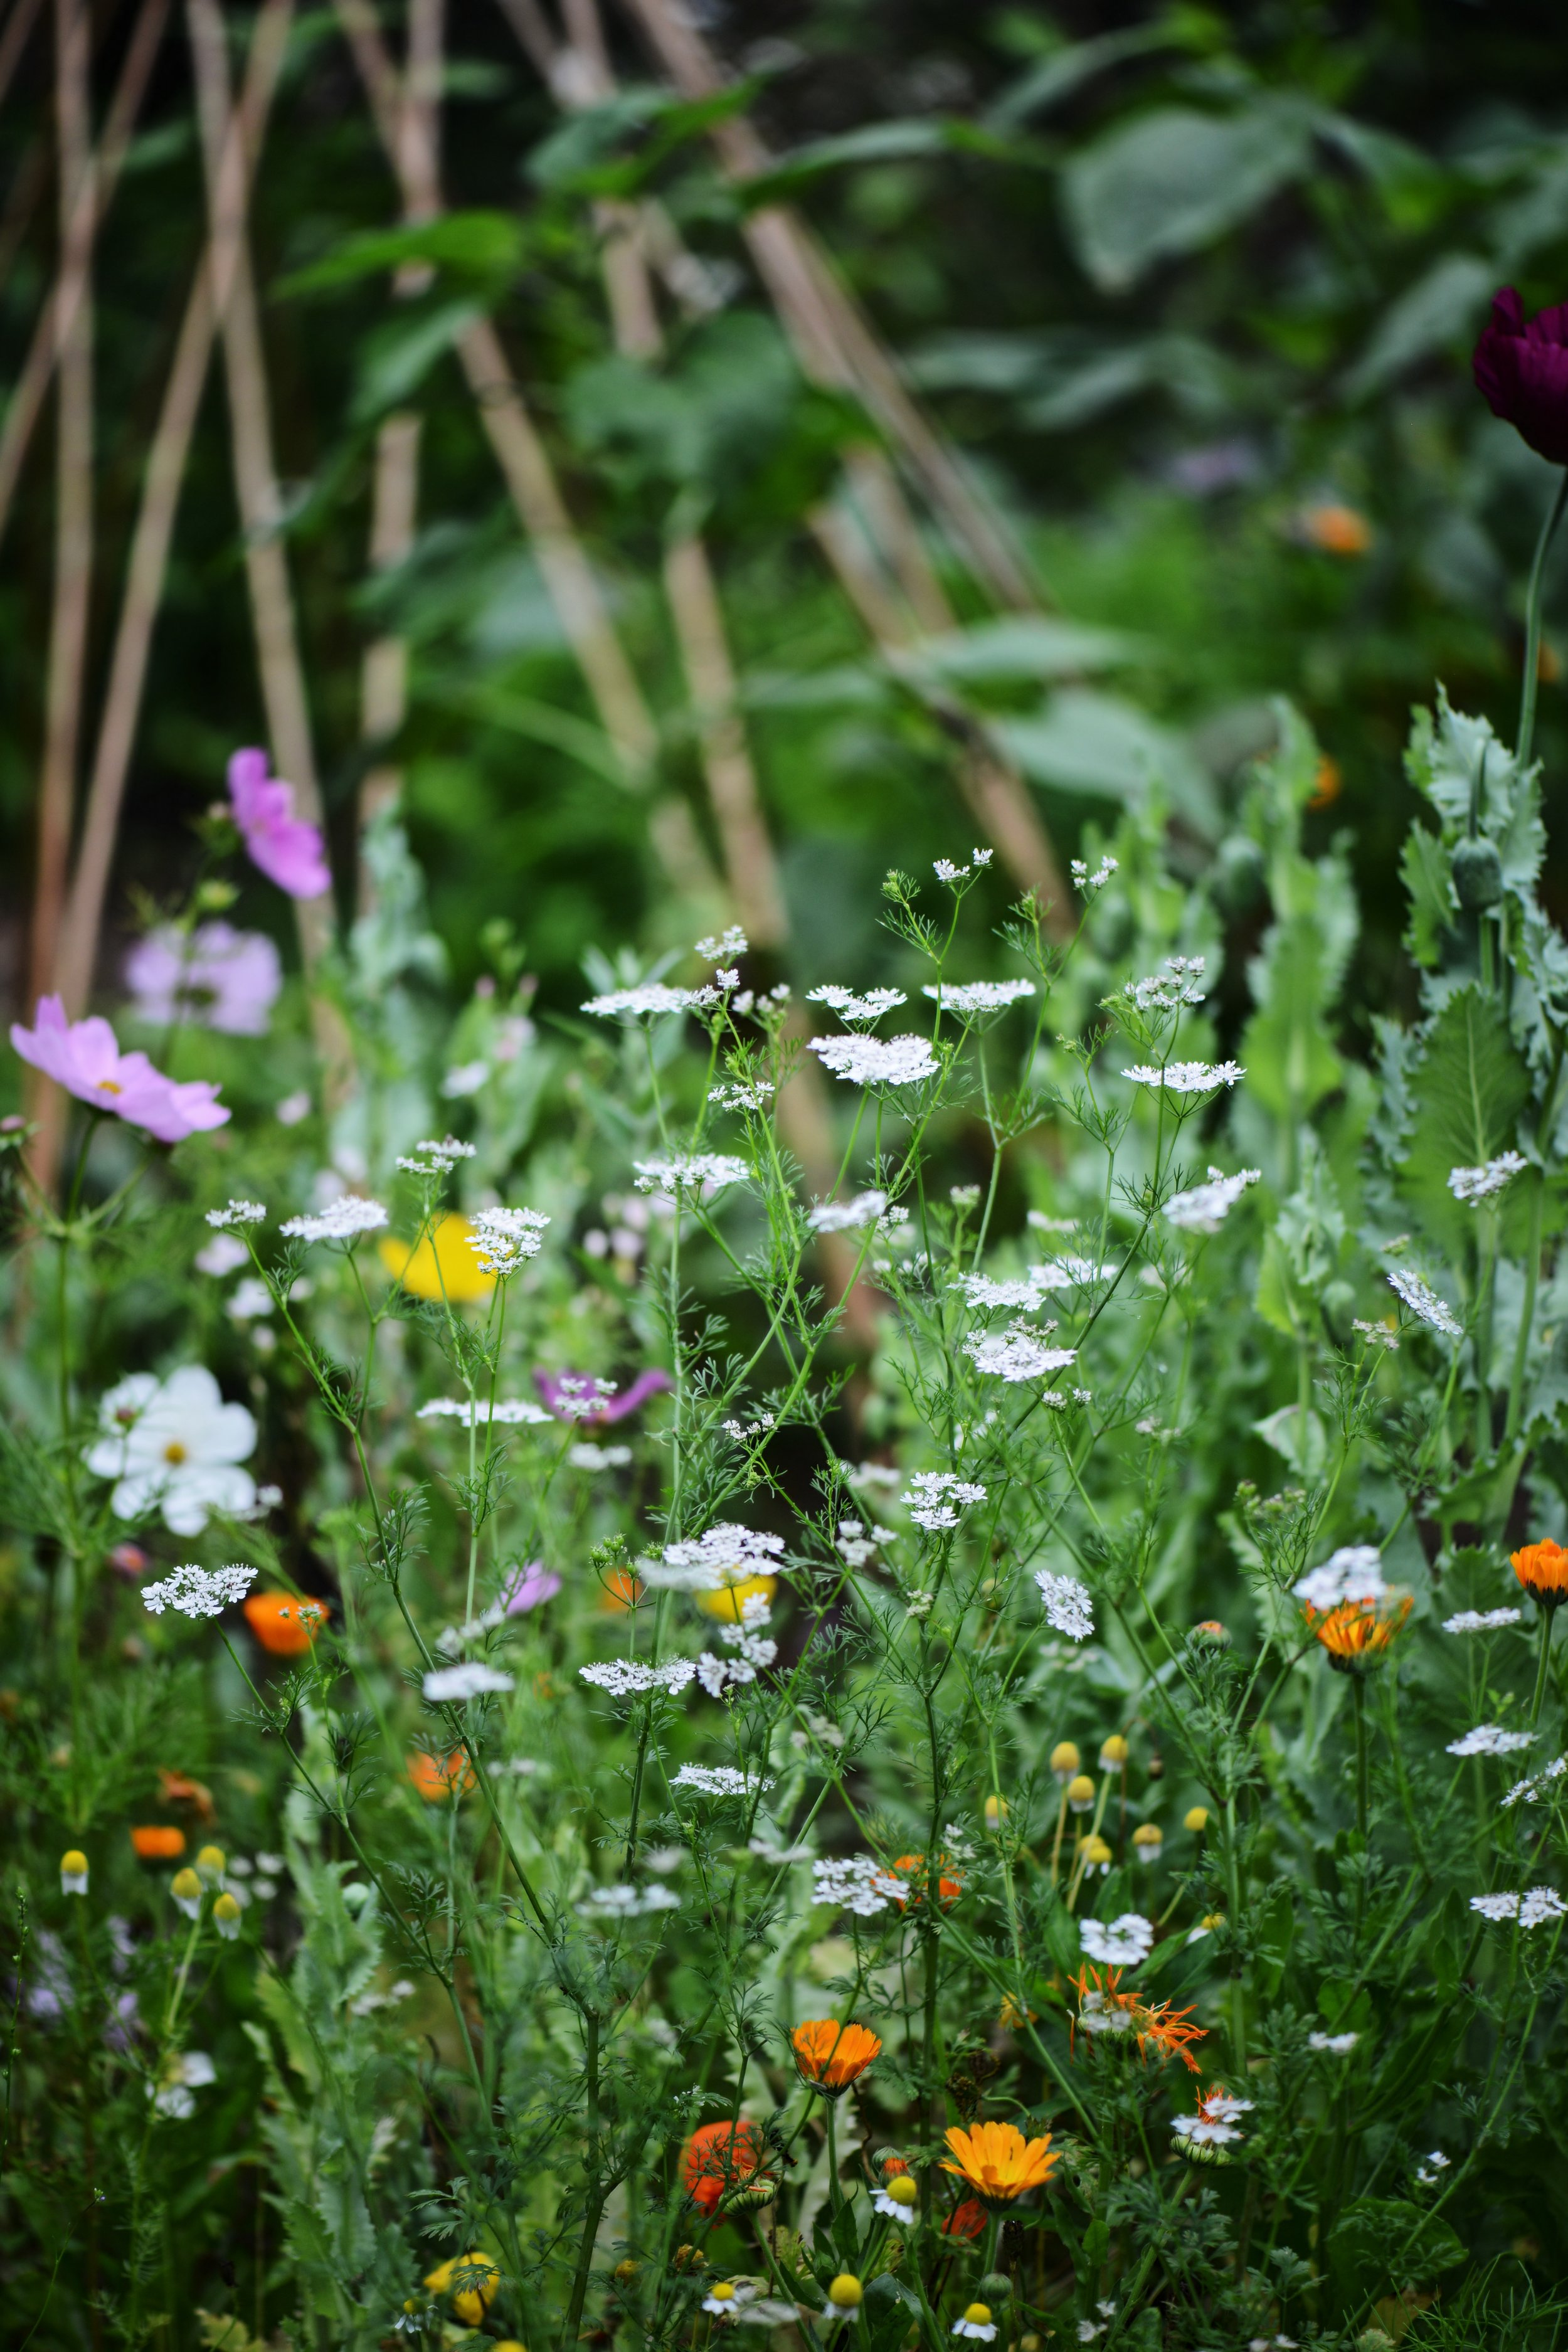 Edisble coriander flowers, calendula and chamomile with happy cosmos in bloom!